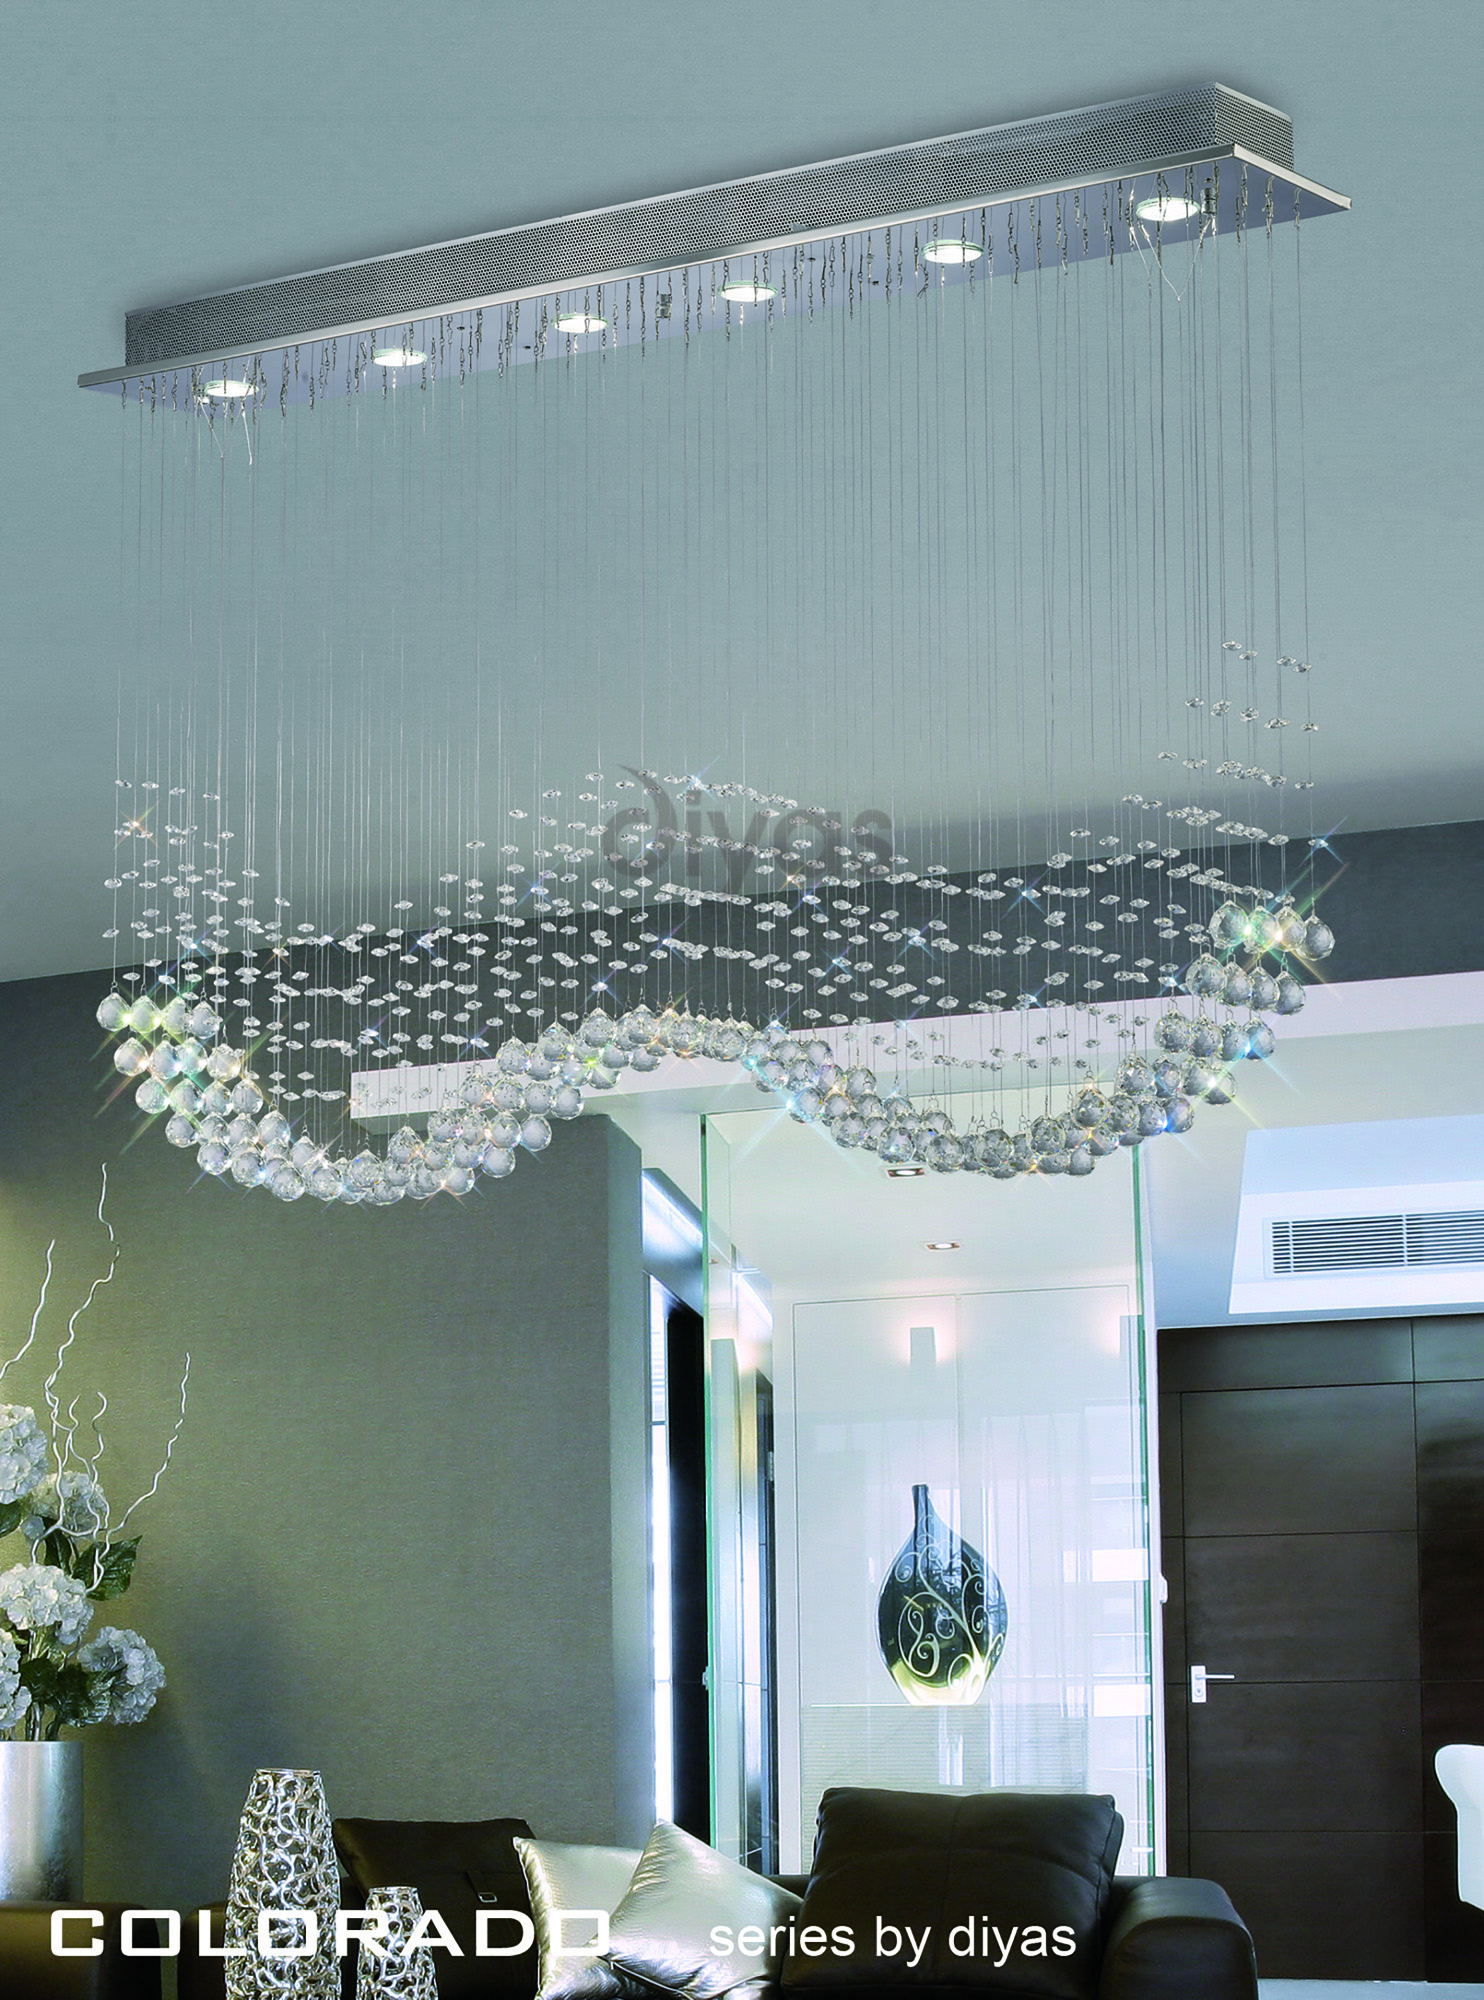 Colorado Crystal Ceiling Lights Diyas Multiple Crystal Pendants